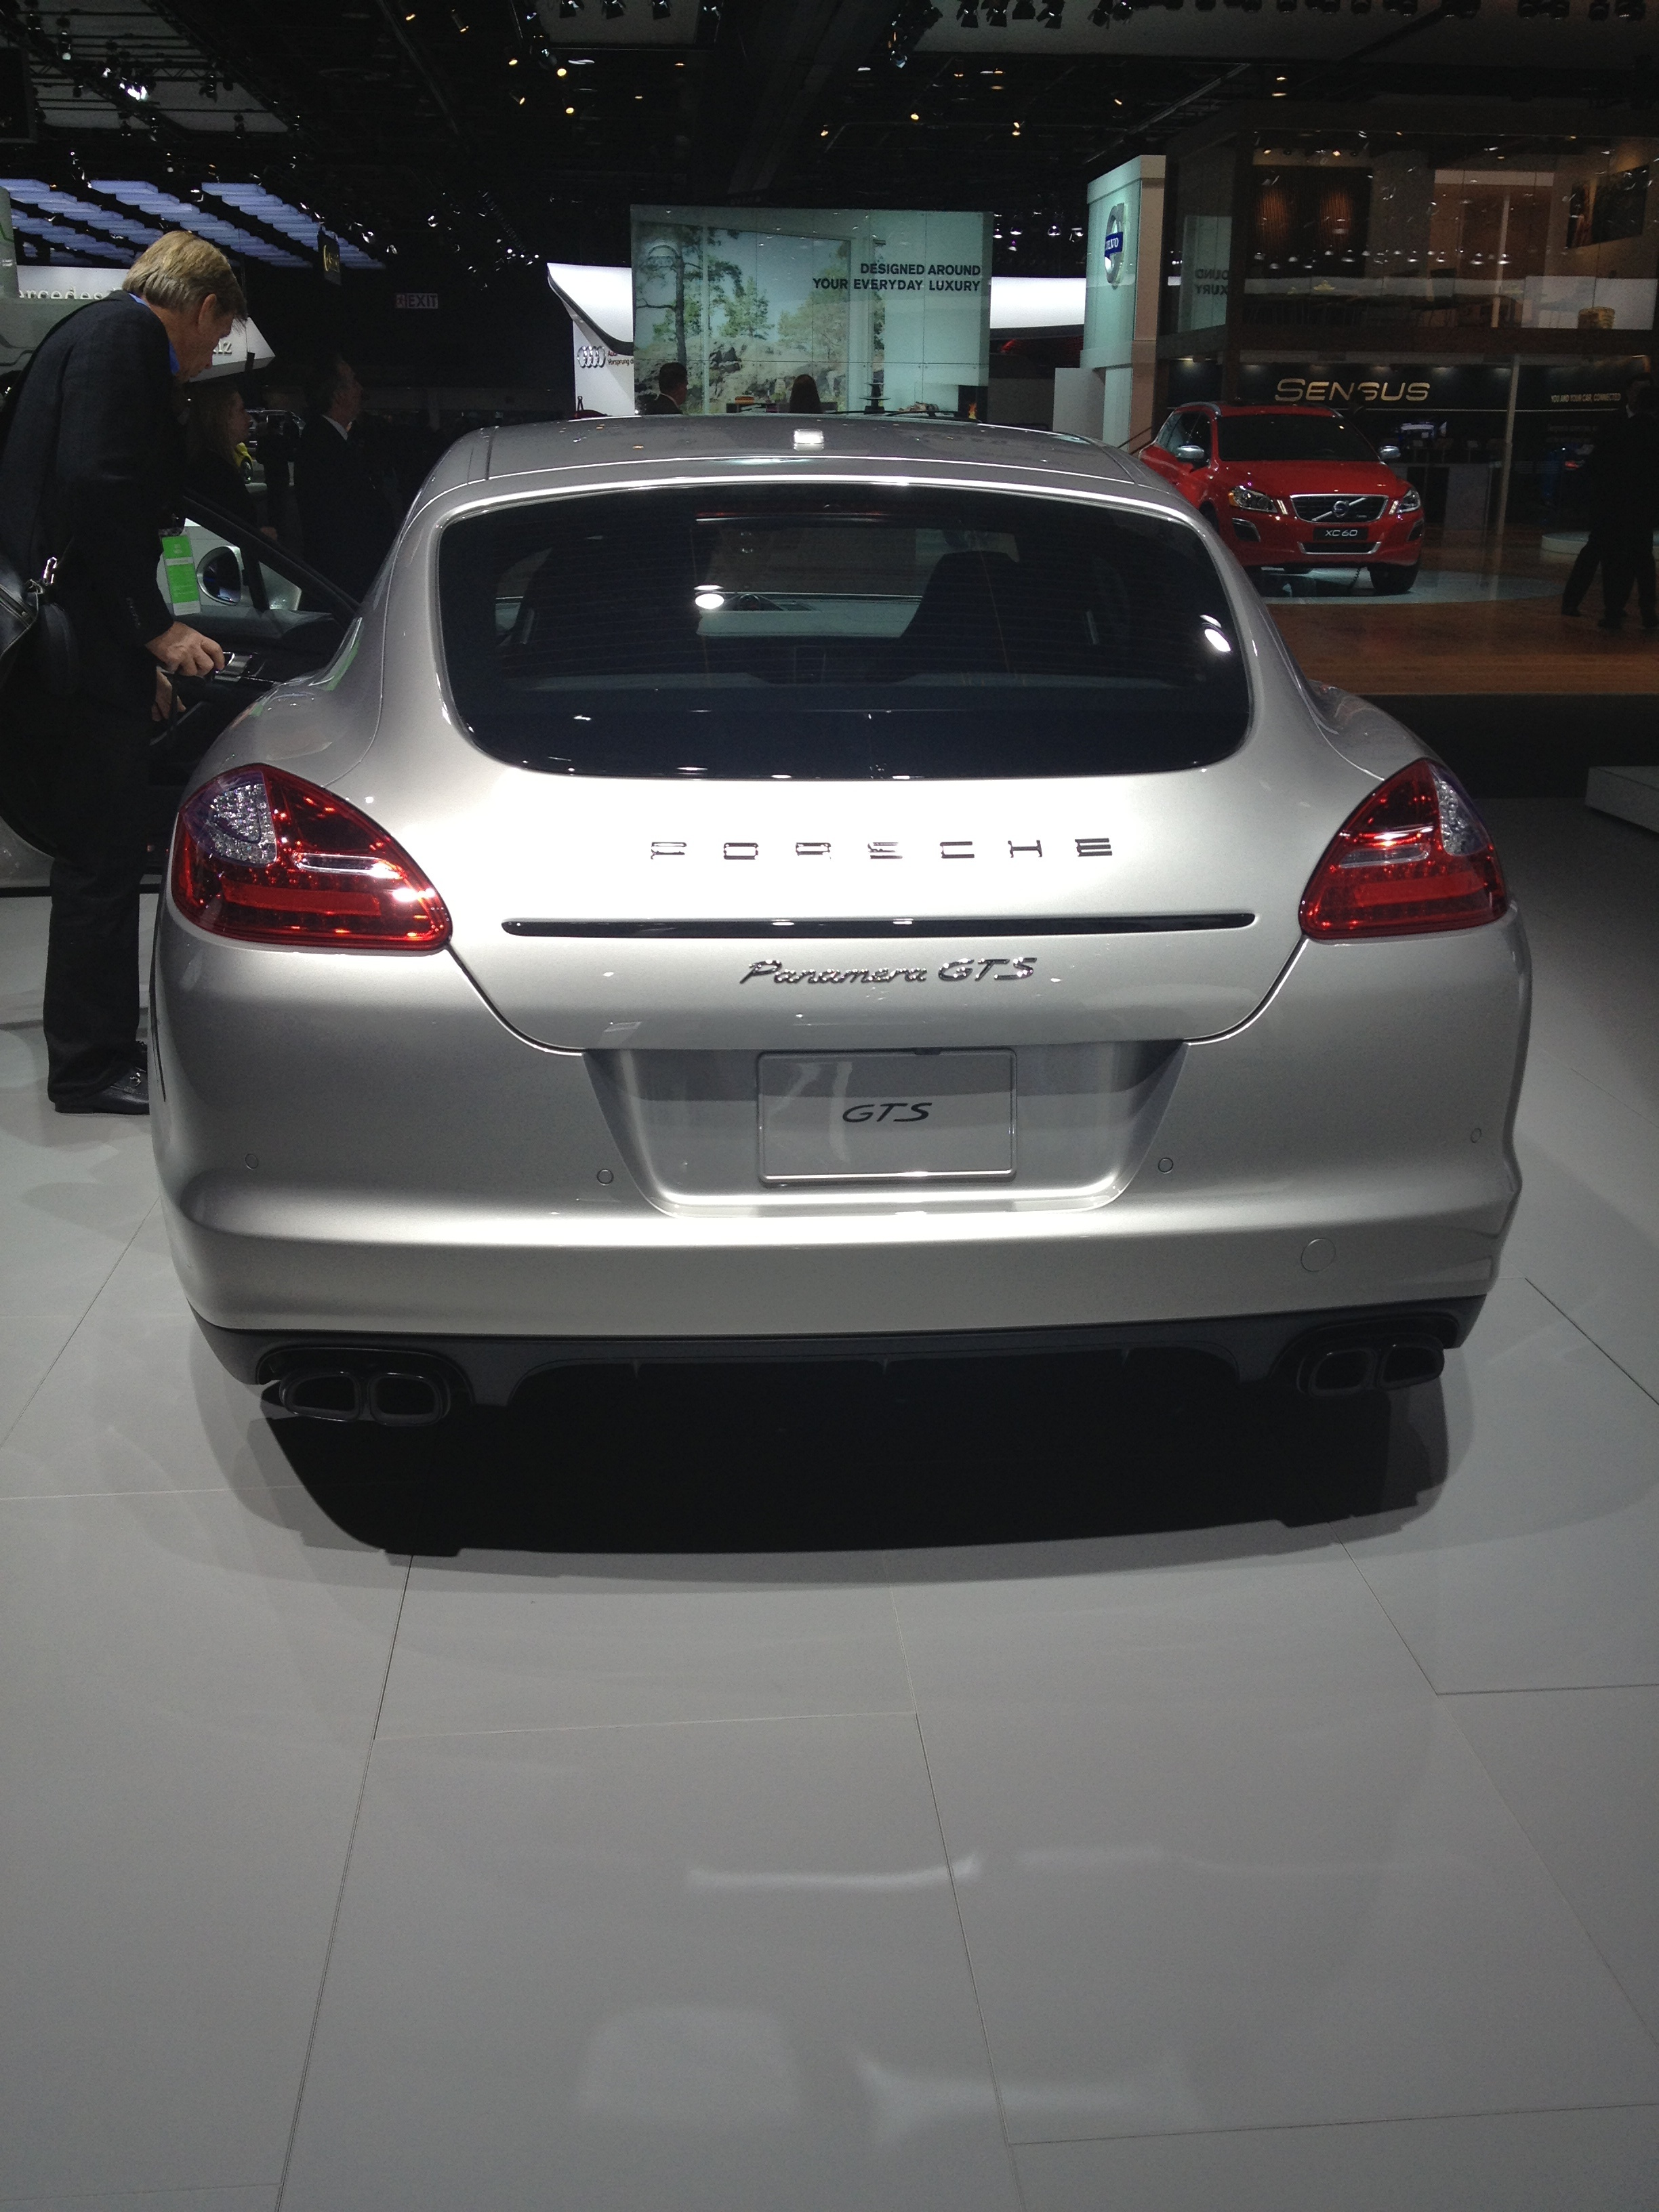 2013 Porsche Panamera GTS  at NAIAS 2013 By sarahlarson